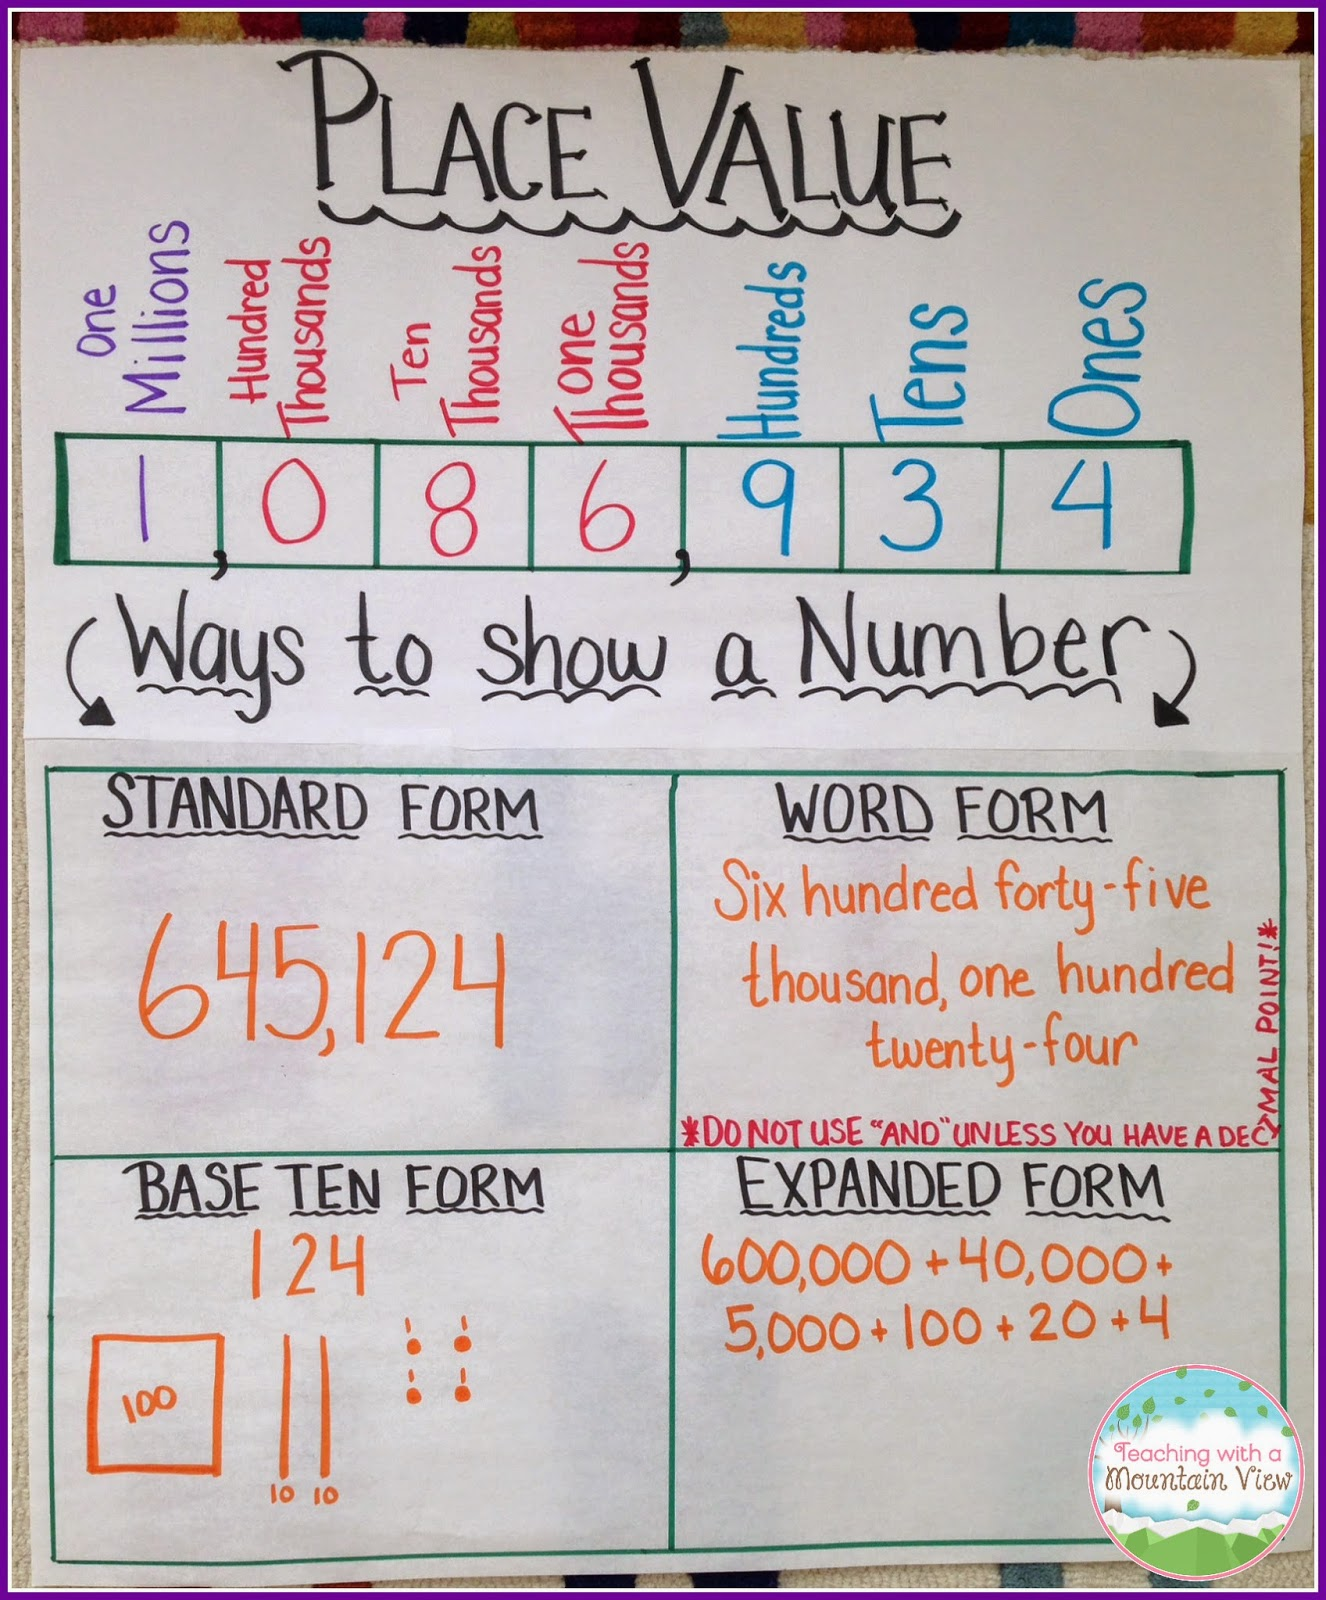 Worksheet Place Value For 3rd Grade teaching with a mountain view place value here is what the anchor chart looks like when we are done its very basic one but it works for me there tons of other cute one